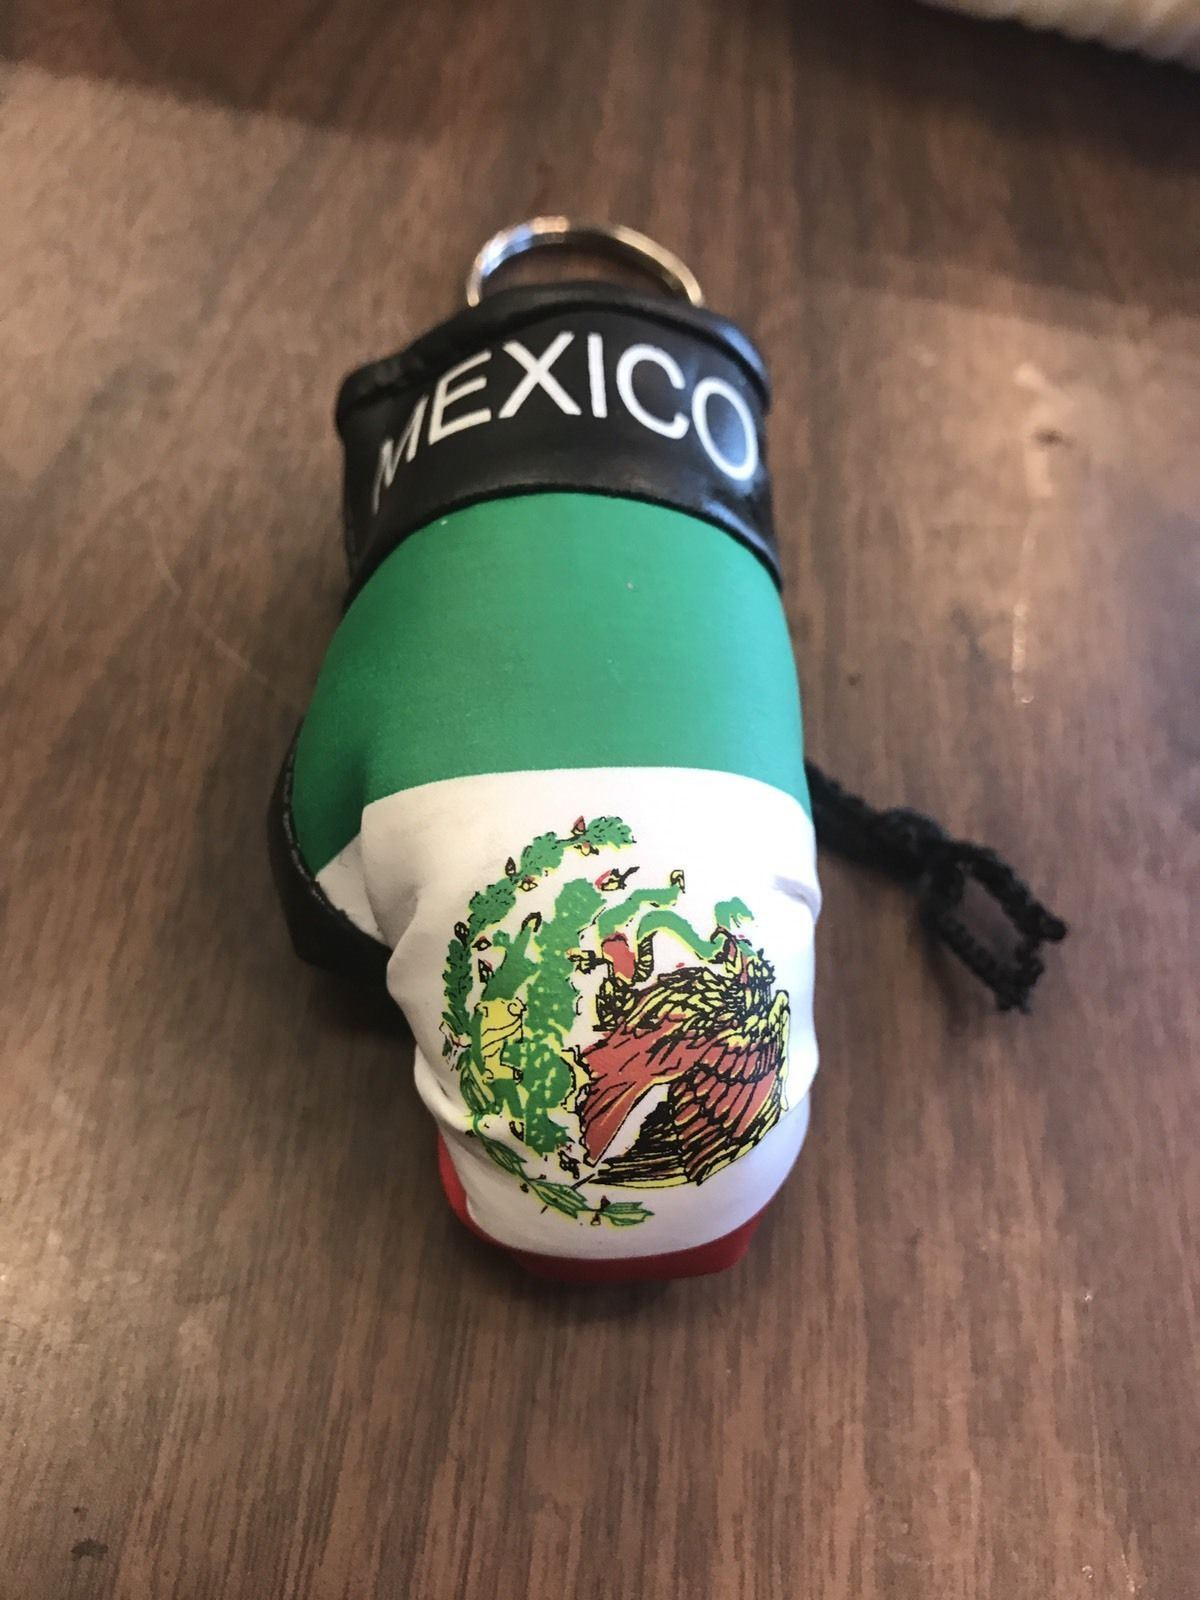 Mexico Boxing Glove Keychain Keys Green Black Red Rings Jewelry Organize Auto